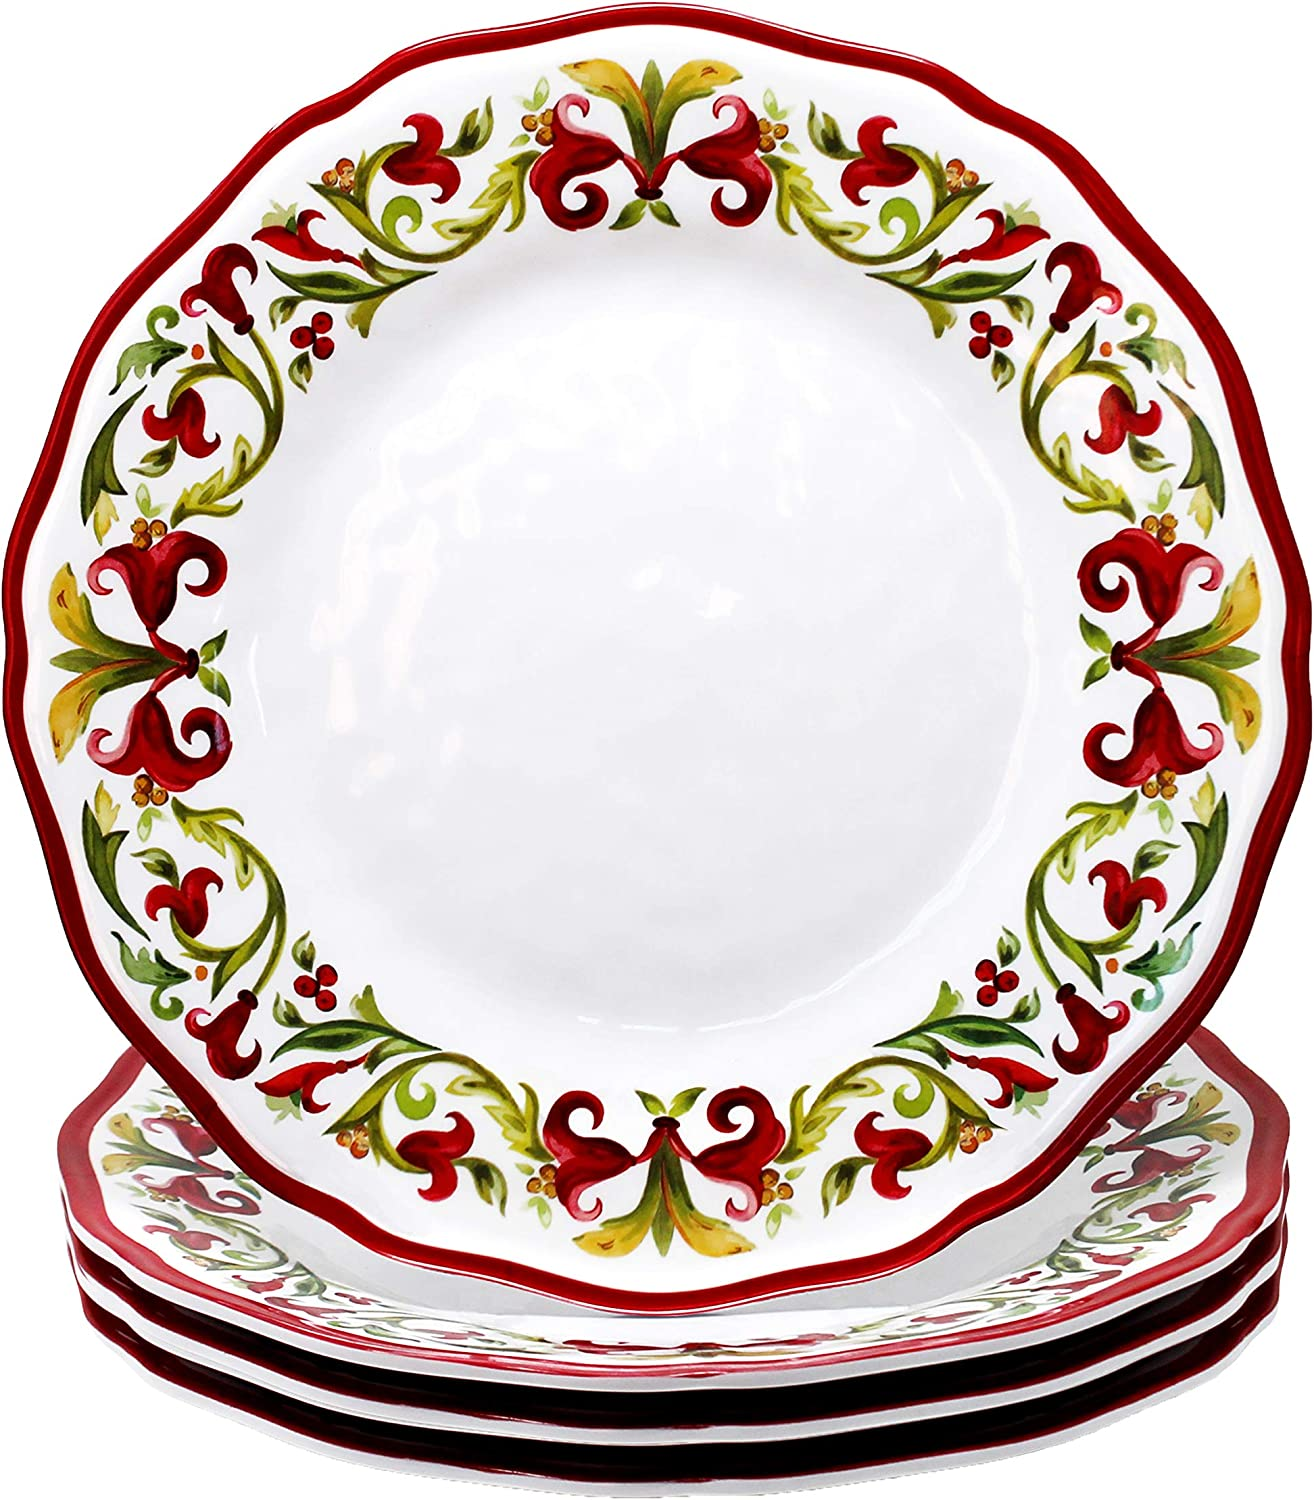 Le Cadeaux Vischio Holiday Collection Melamine Dinner Plate, Set of 4